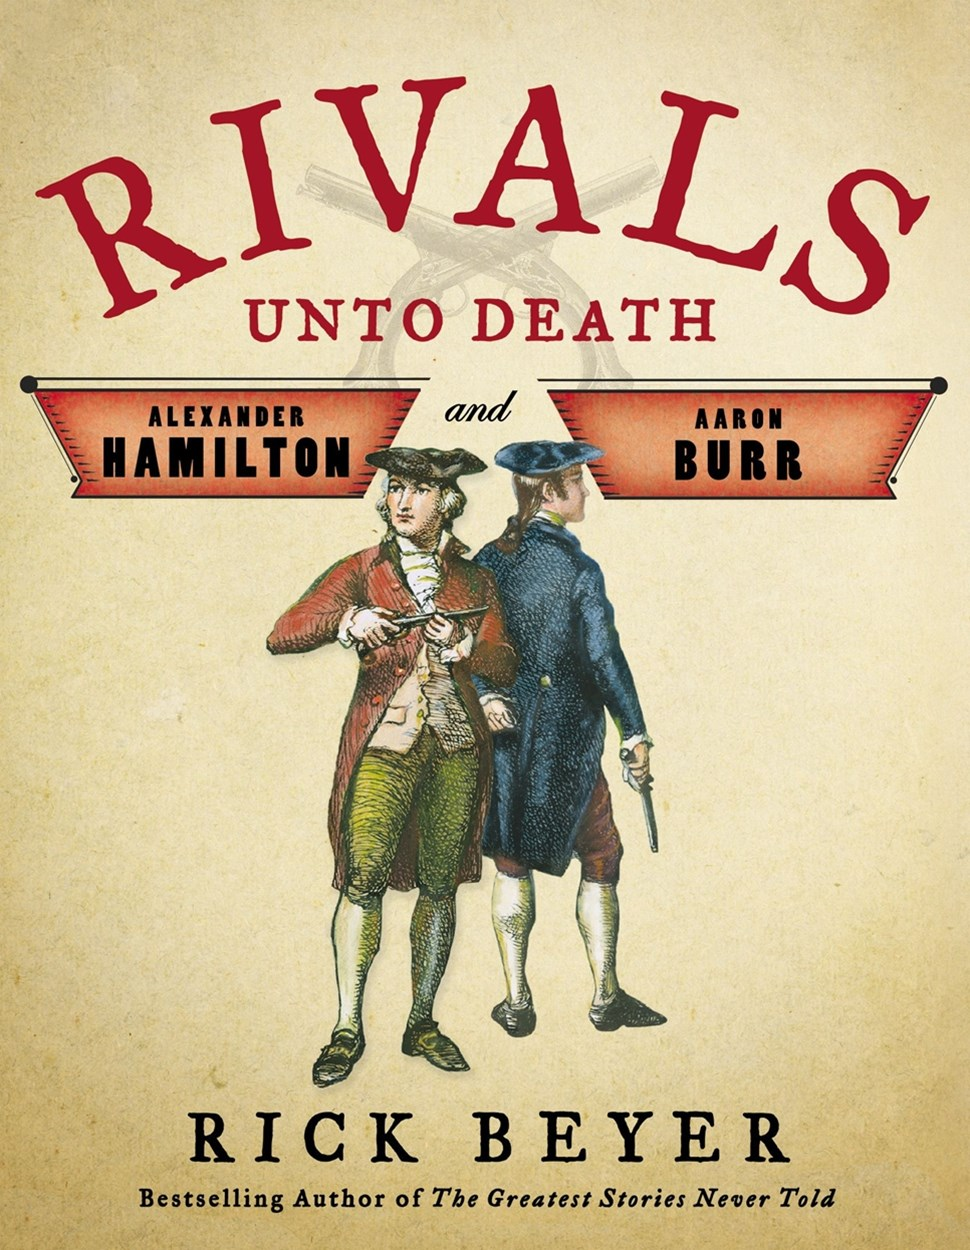 Rivals Unto Death